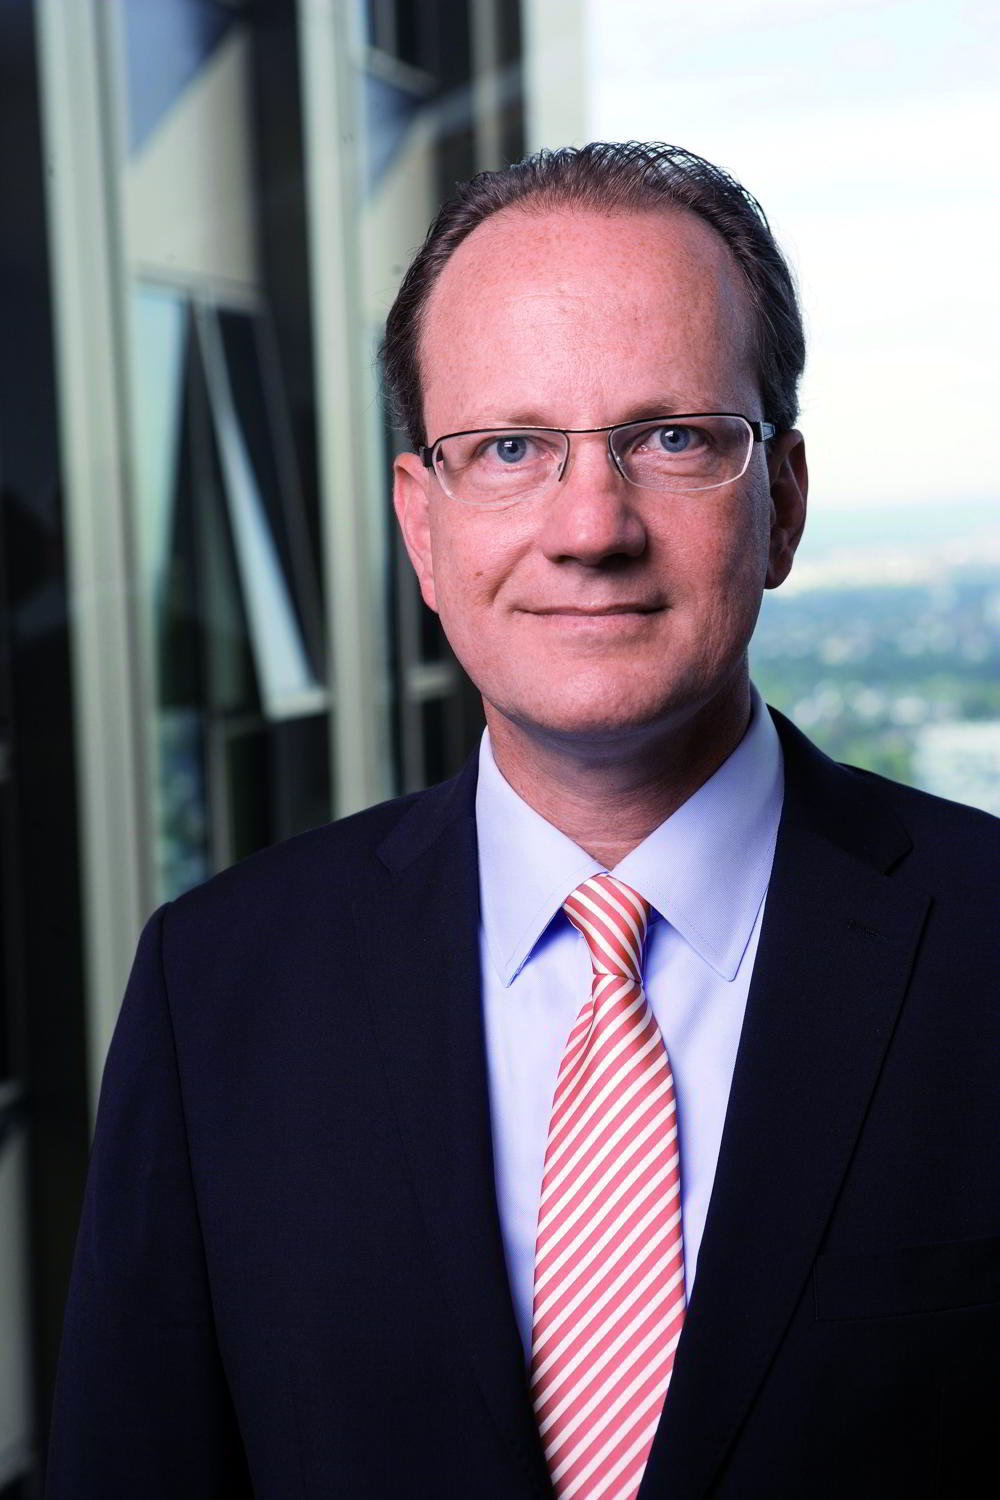 PwC, Rainer Wilken, Top-Arbeitgeber, high potential,Consulting